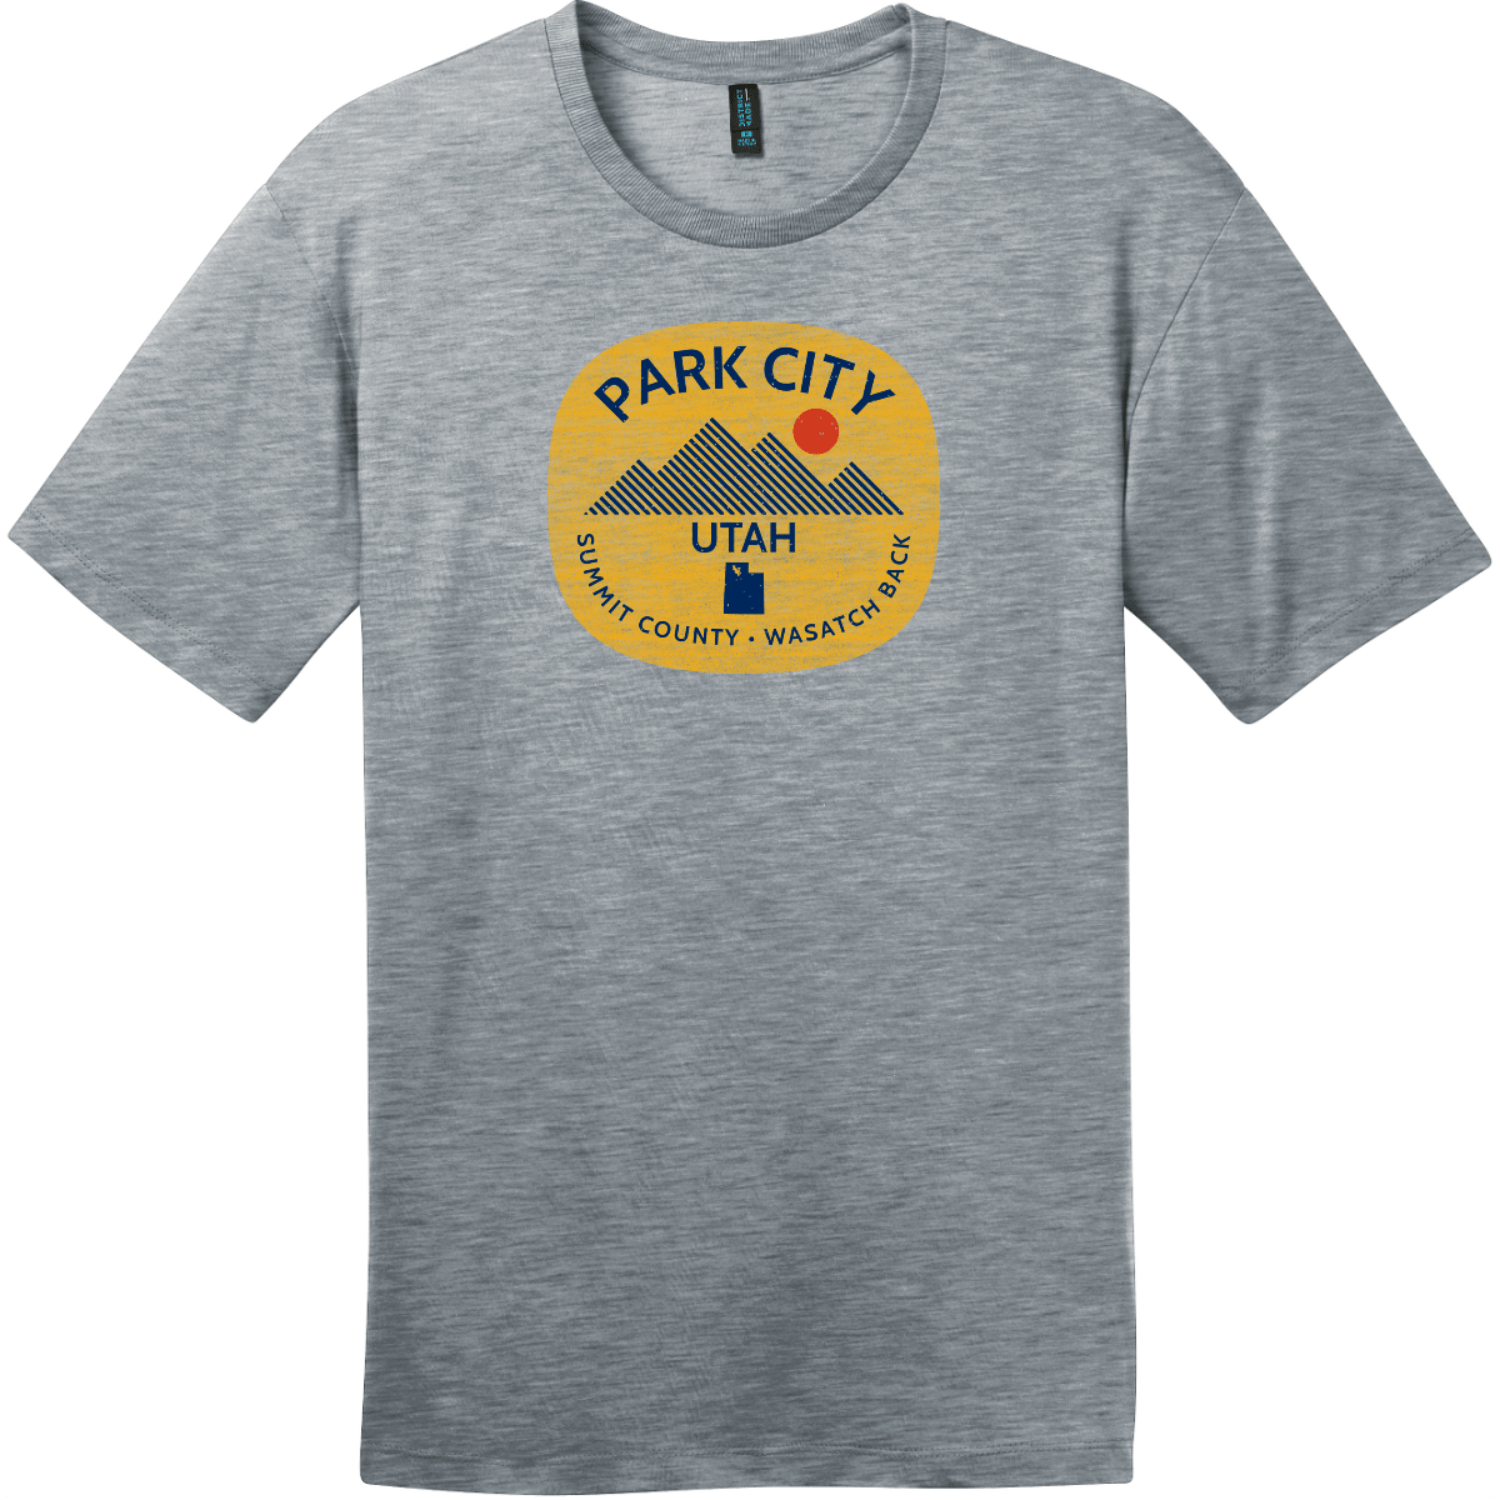 Park City Utah Wasatch Back T-Shirt Heathered Steel District Perfect Weight Tee DT104